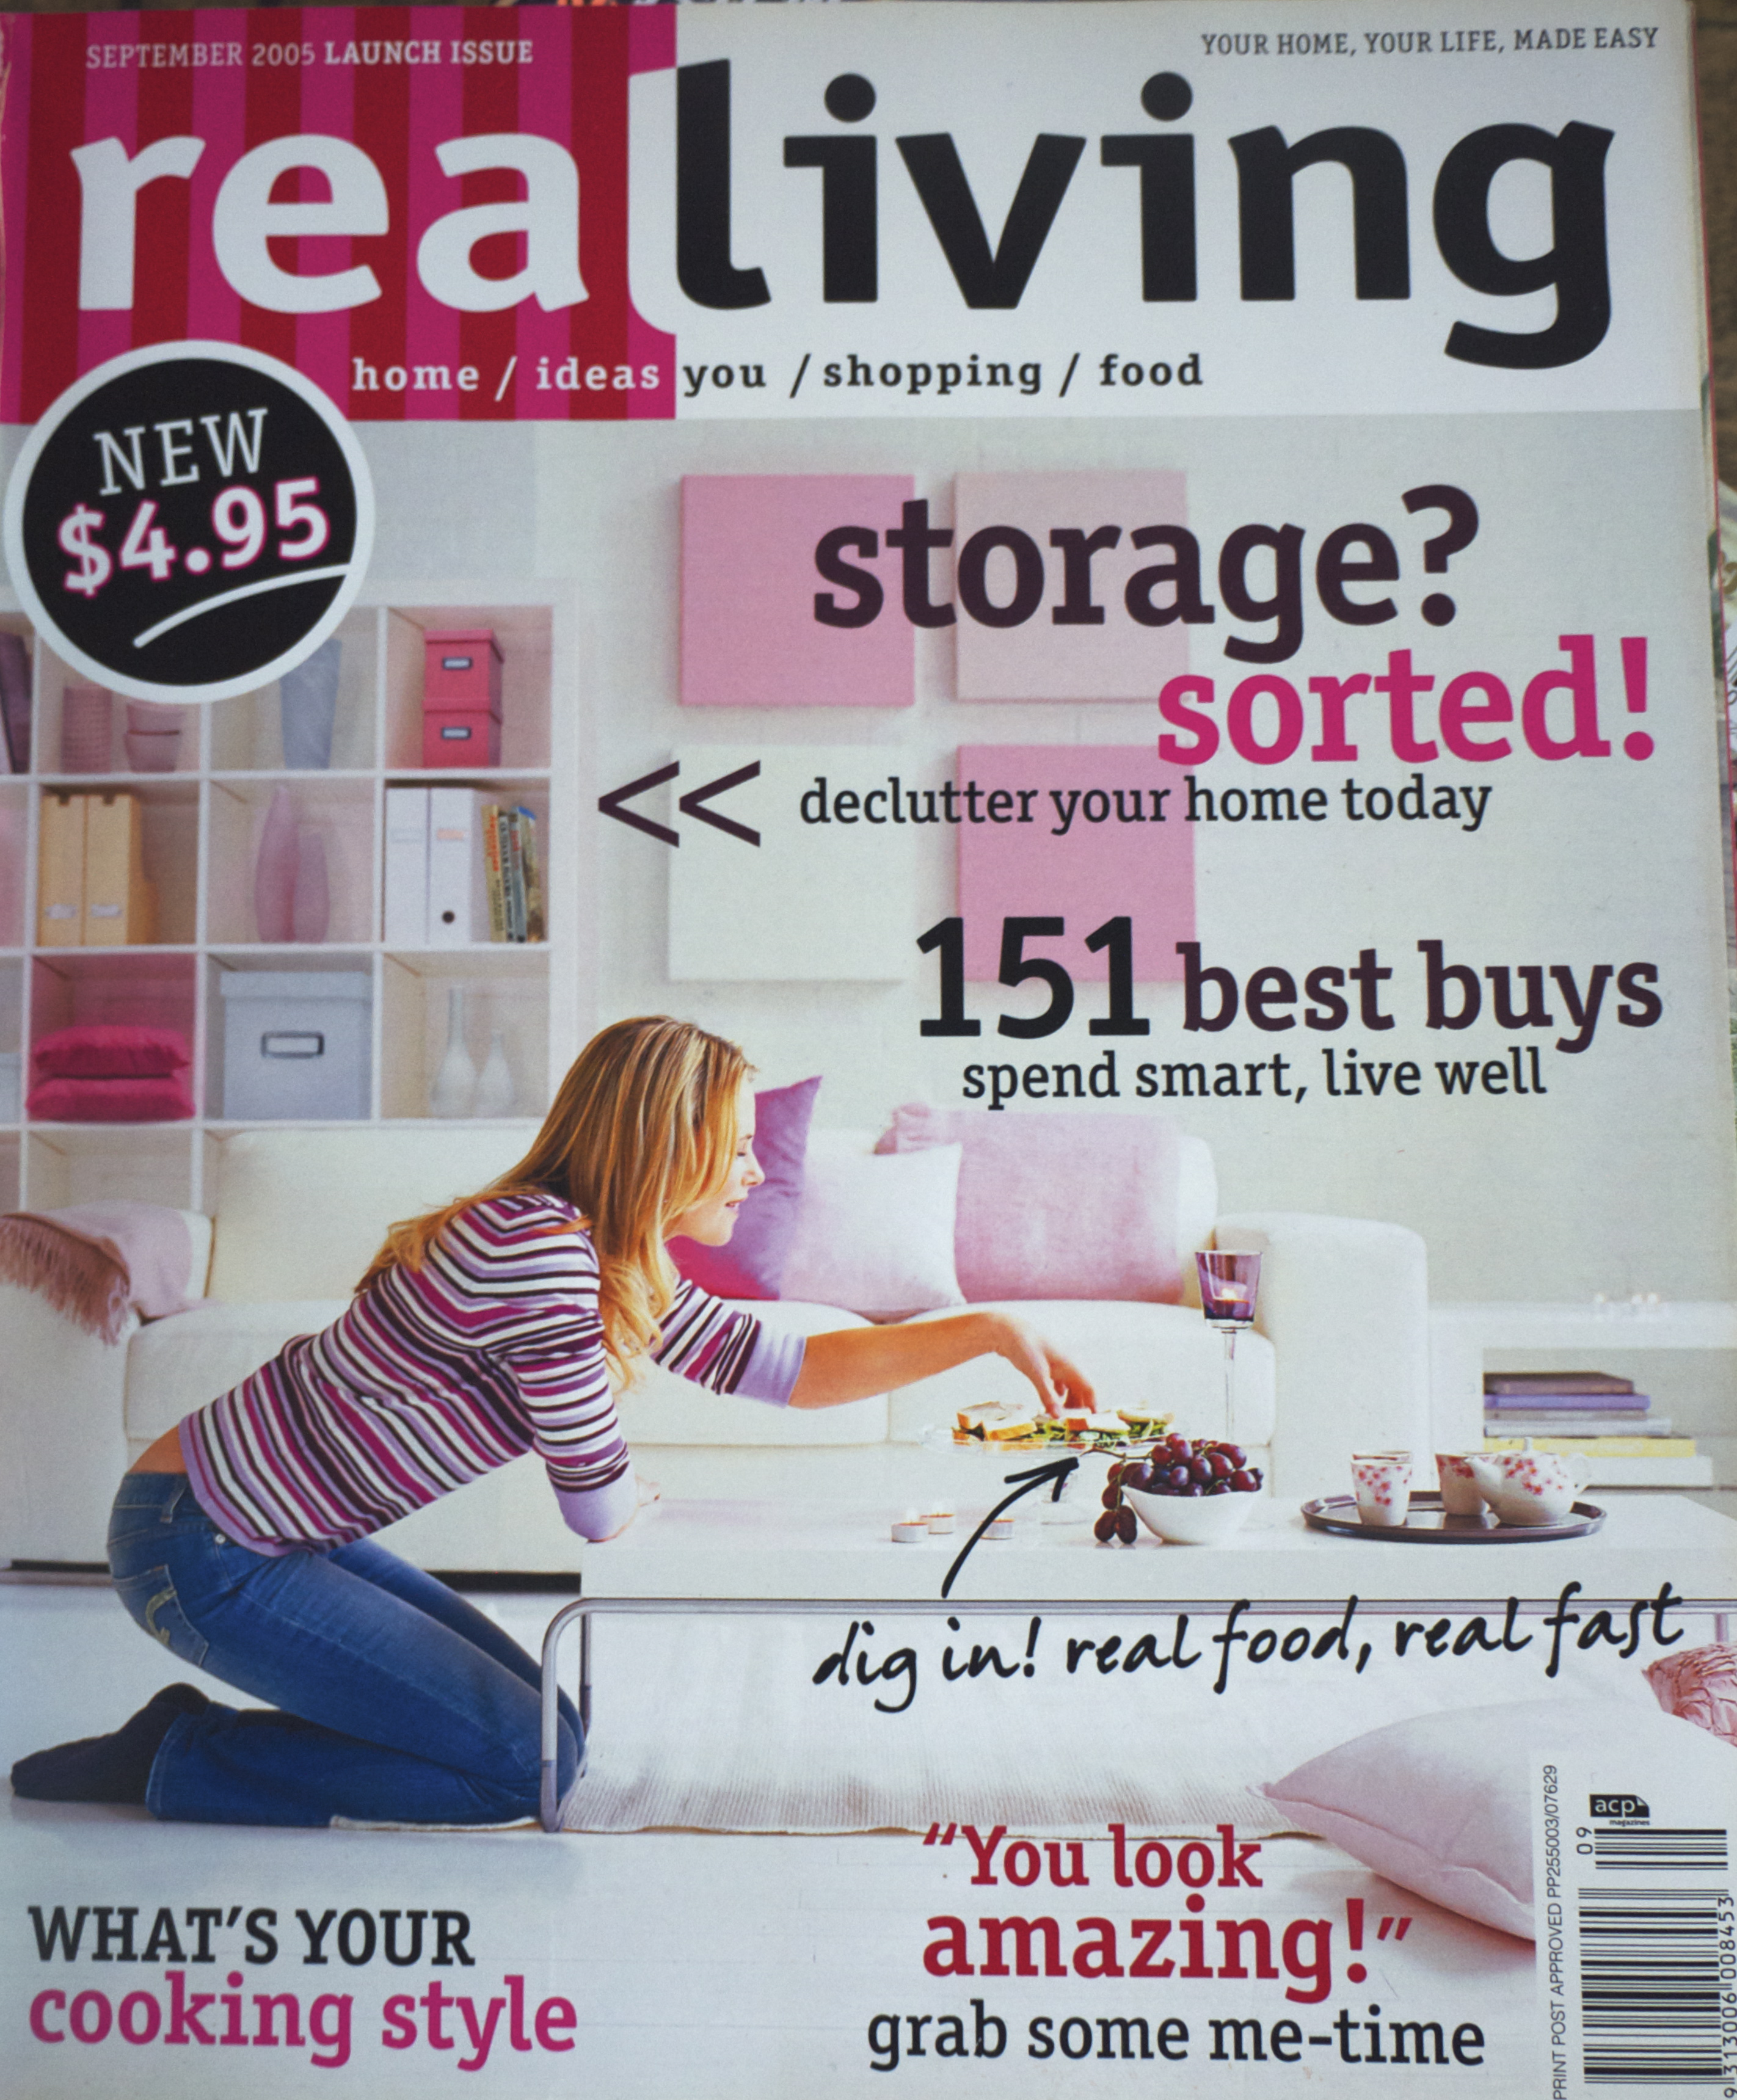 Real Living Front Cover of Issue One